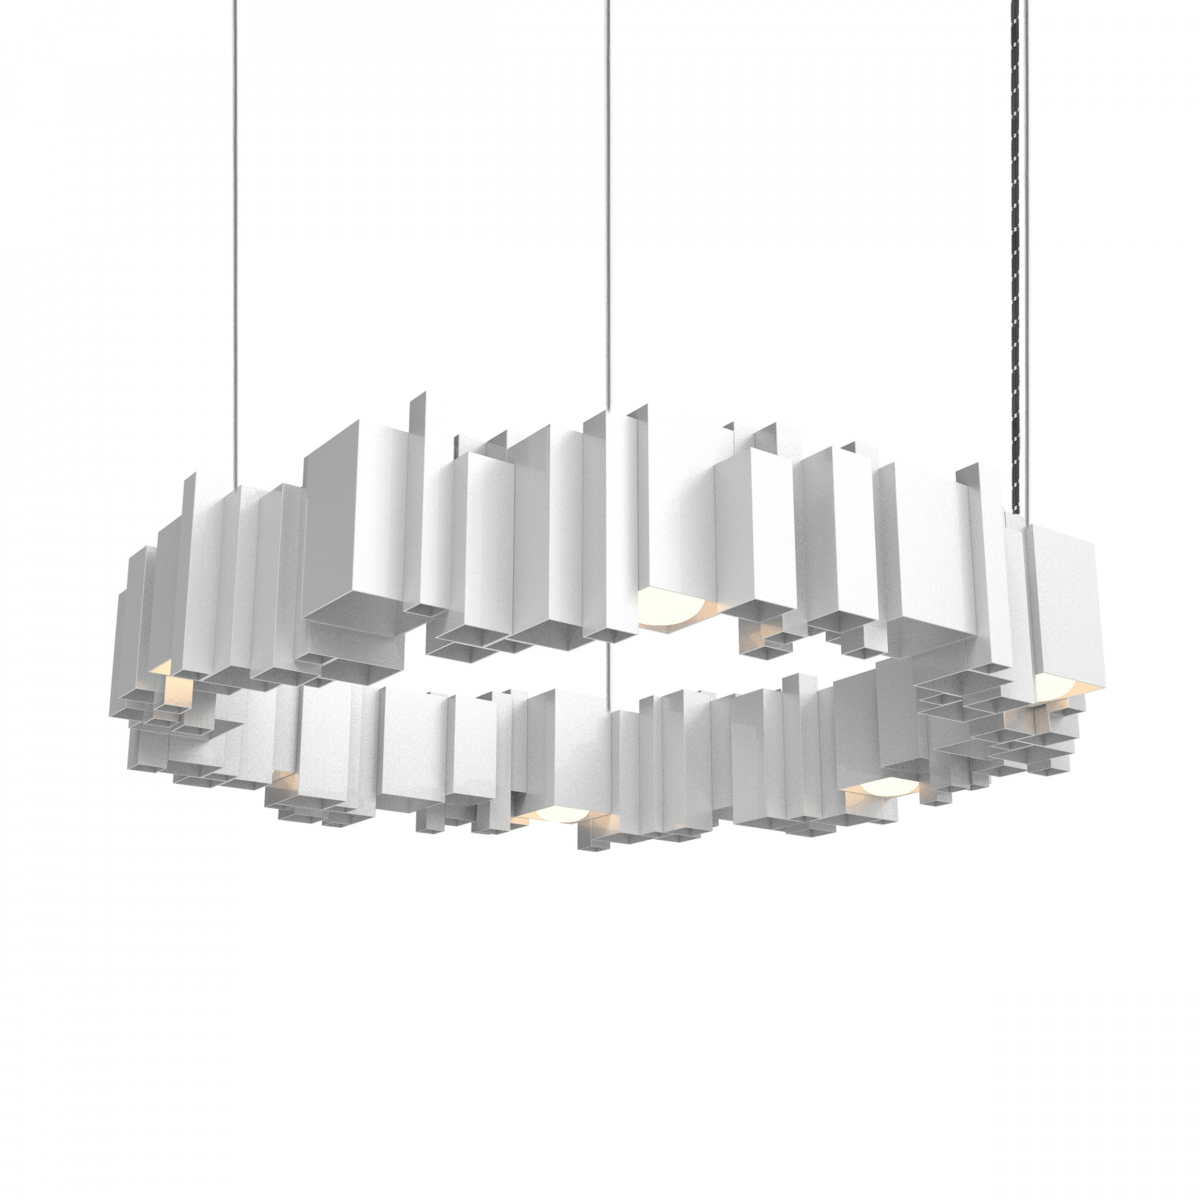 JSPR Cityscapes Urban ON Silver Zilver Exclusieve Lamp